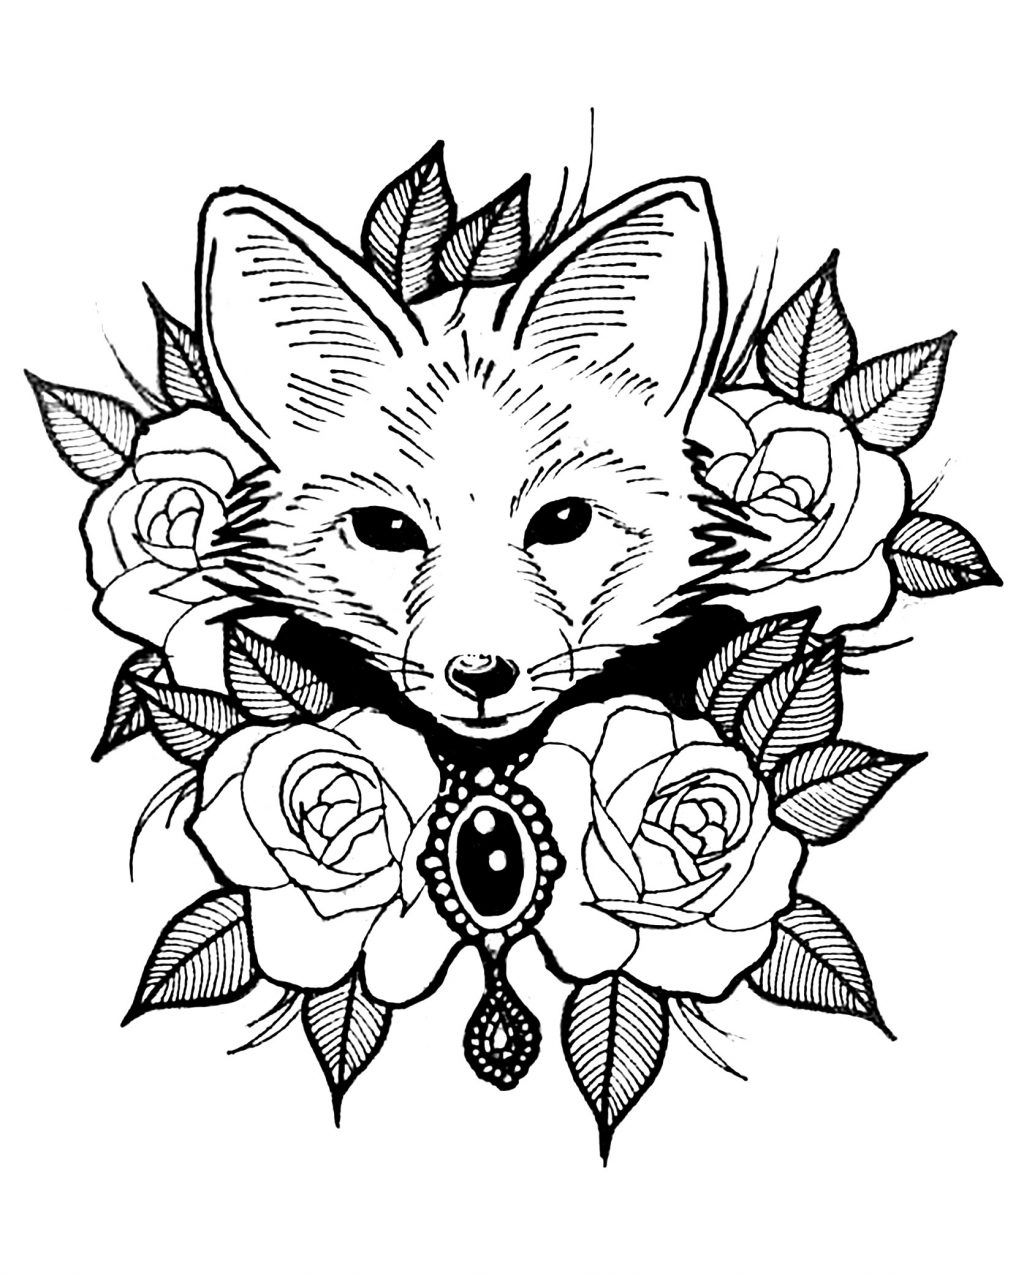 Cute Coloring Pages Draw So Cute Coloring Pages Coloring Pages For Everyone Albanysinsanity Com Fox Coloring Page Zoo Animal Coloring Pages Animal Coloring Books